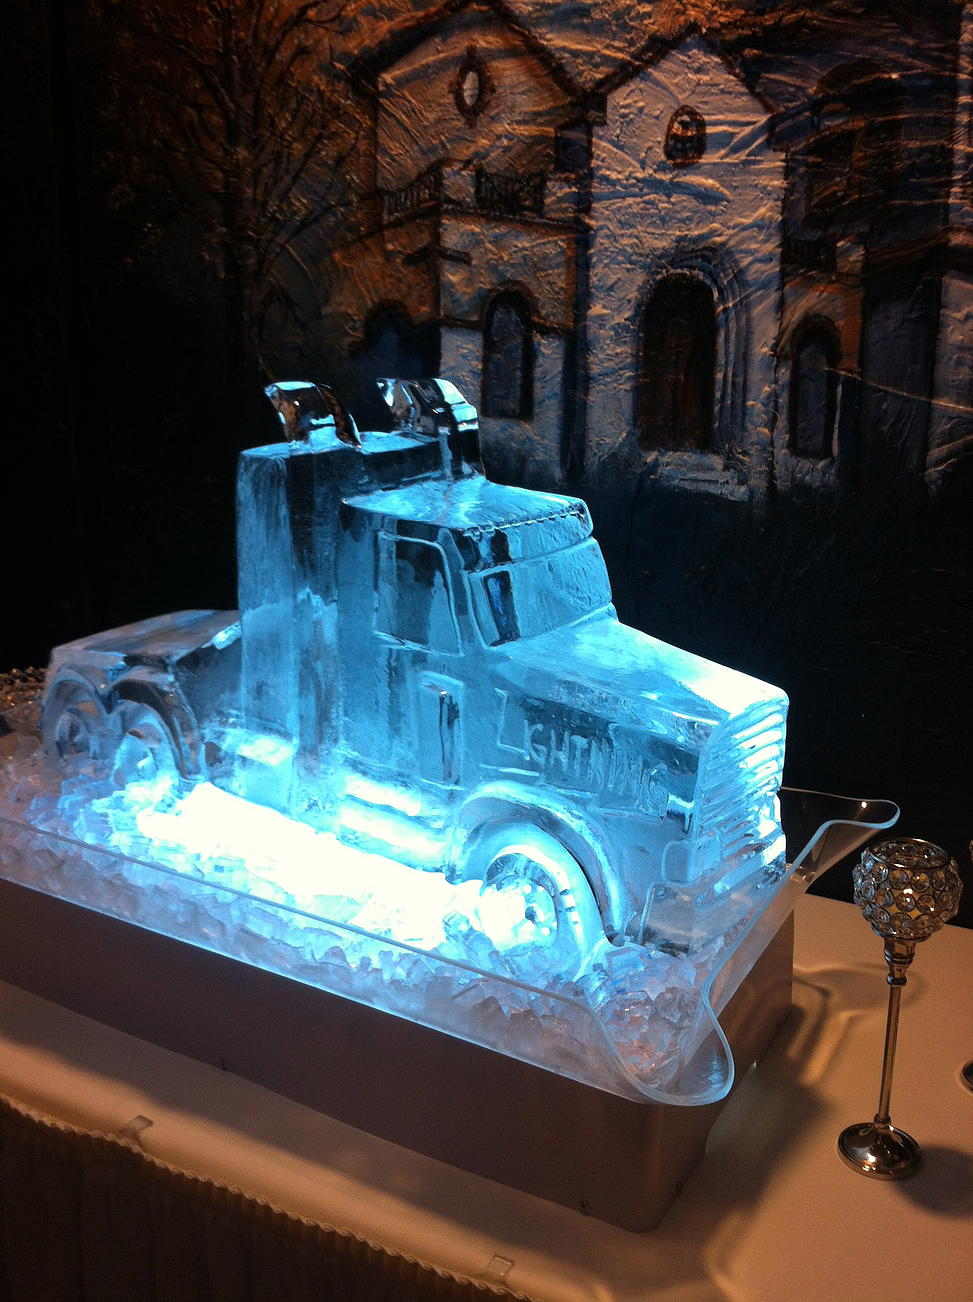 Diesel ice sculpture